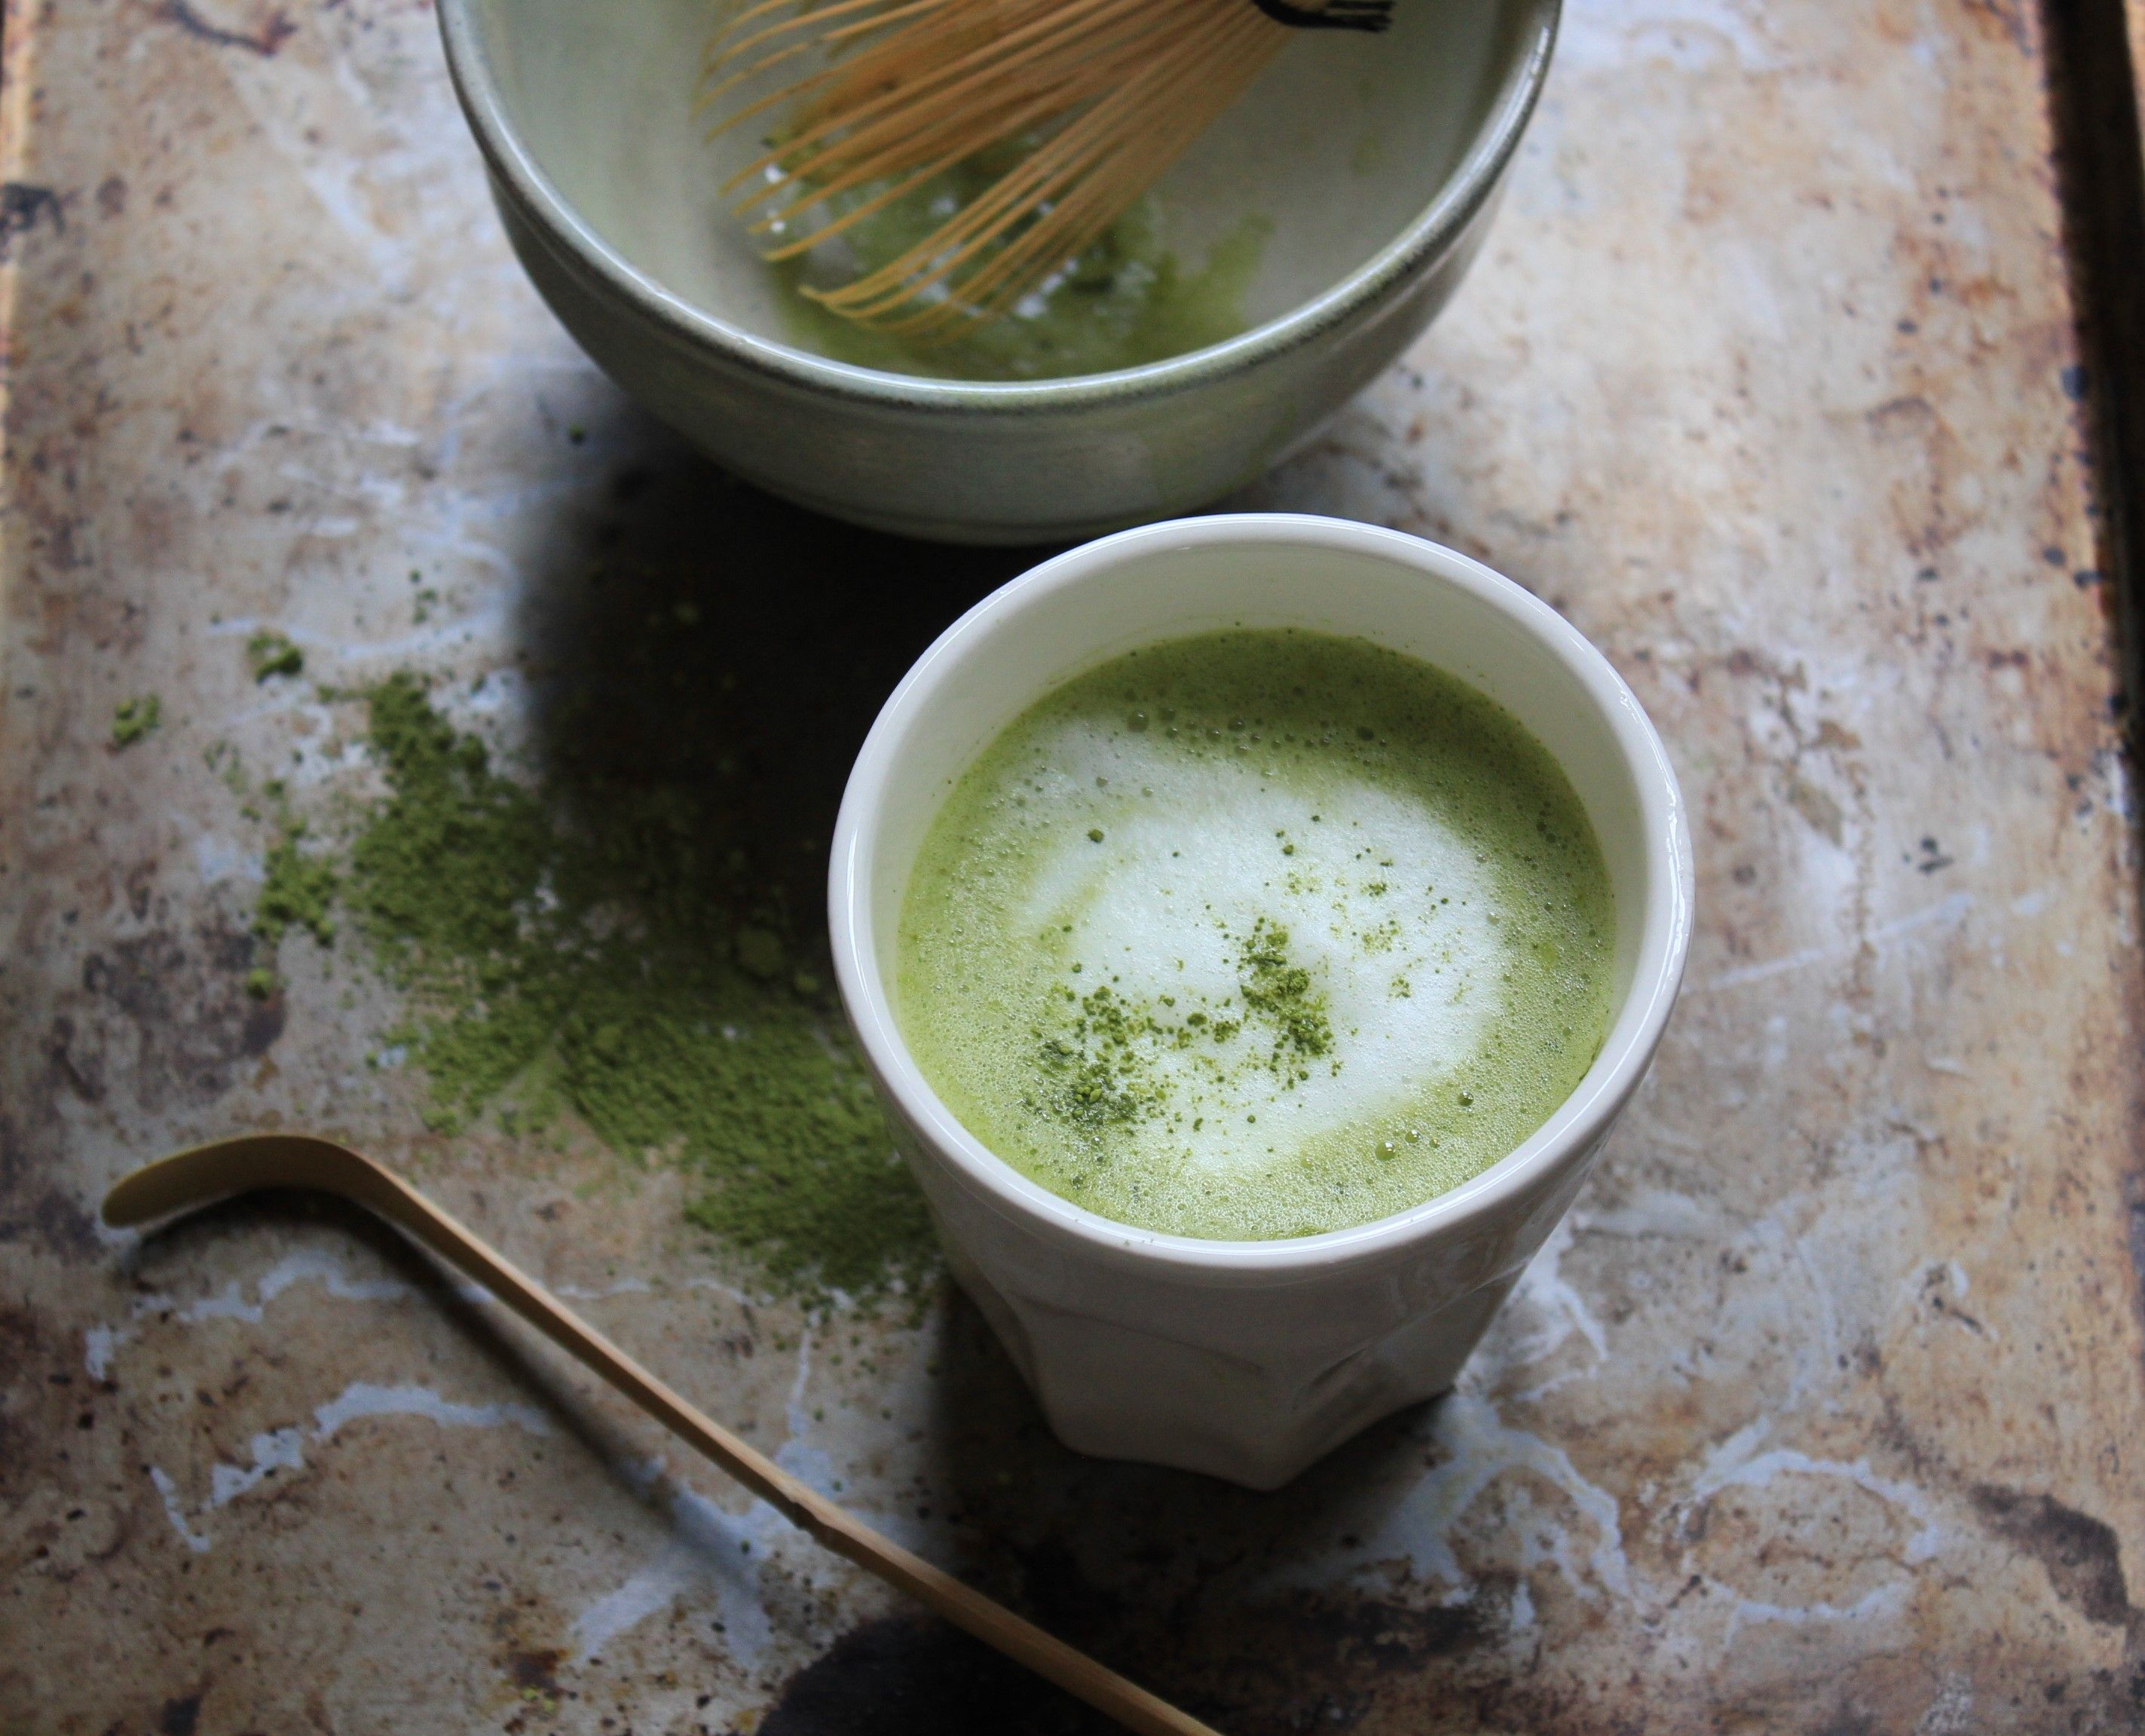 Jugetsudo S Matcha Is Made From A Green Tea Called Tencha The Tea Leaves That Are Covered A Few Weeks Before Harvest To Sto Matcha Green Tea Powder Matcha Tea